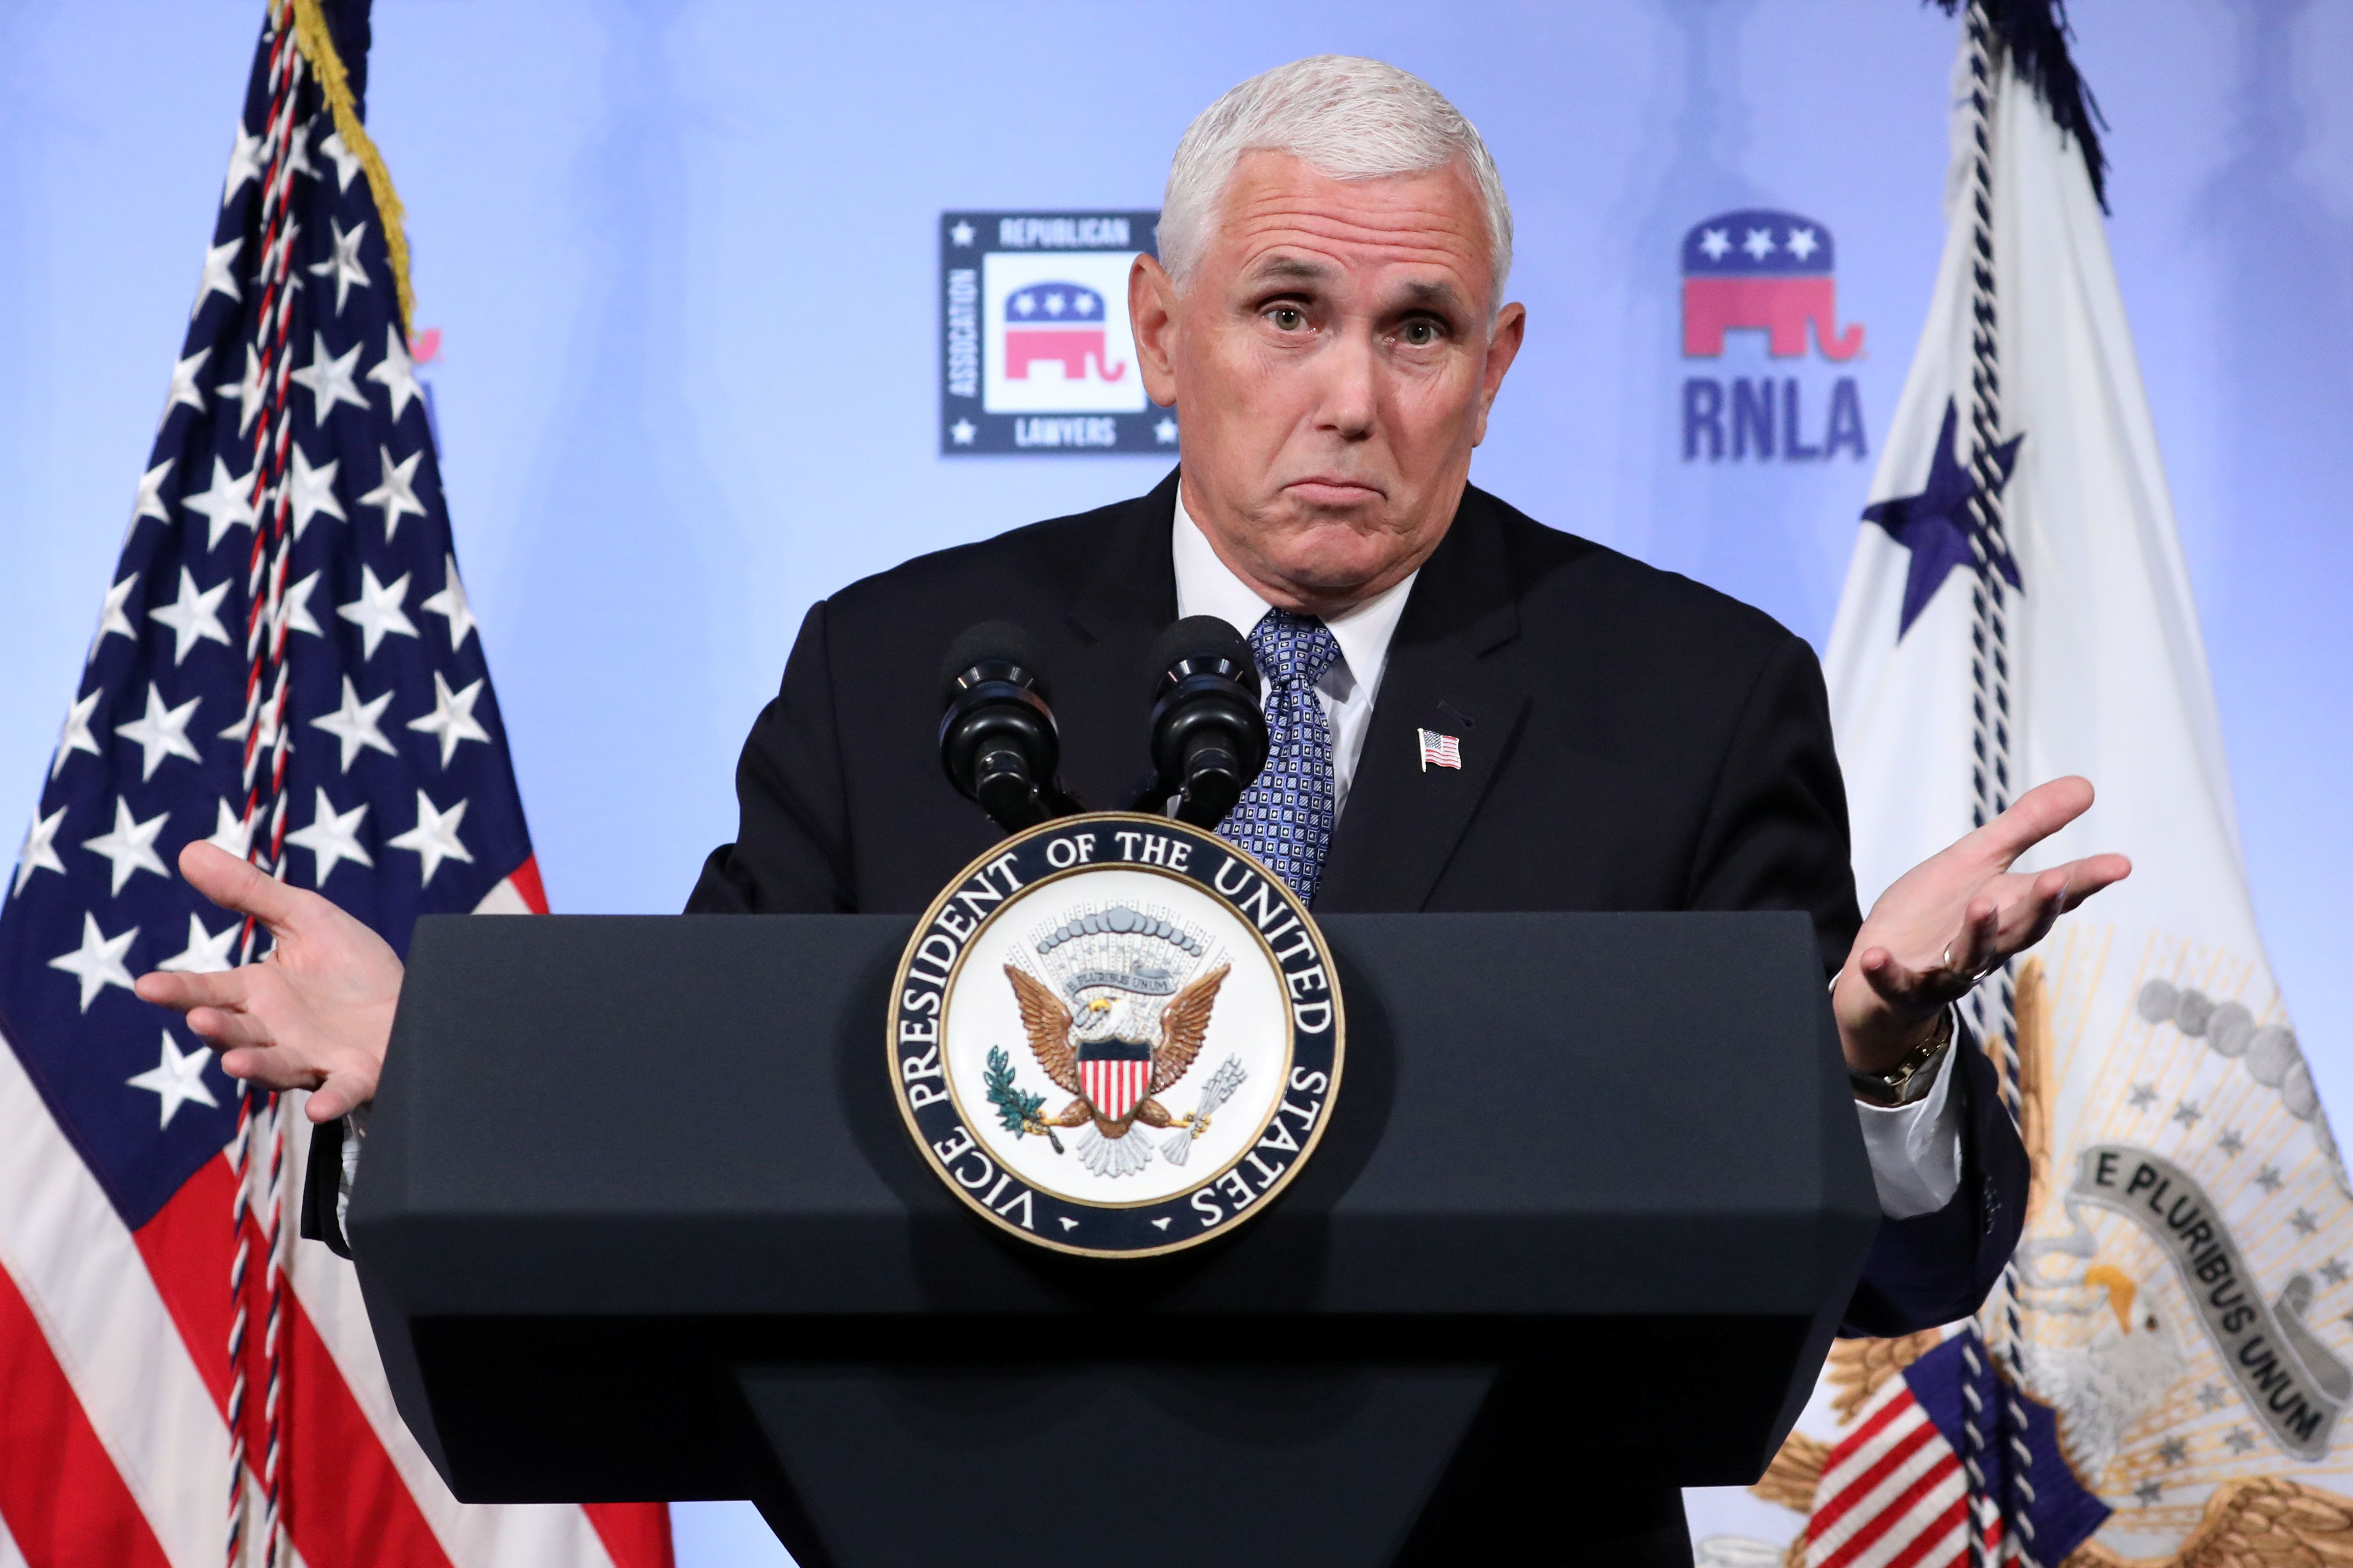 Discussion on this topic: Pence said hed take a lie detector , pence-said-hed-take-a-lie-detector/